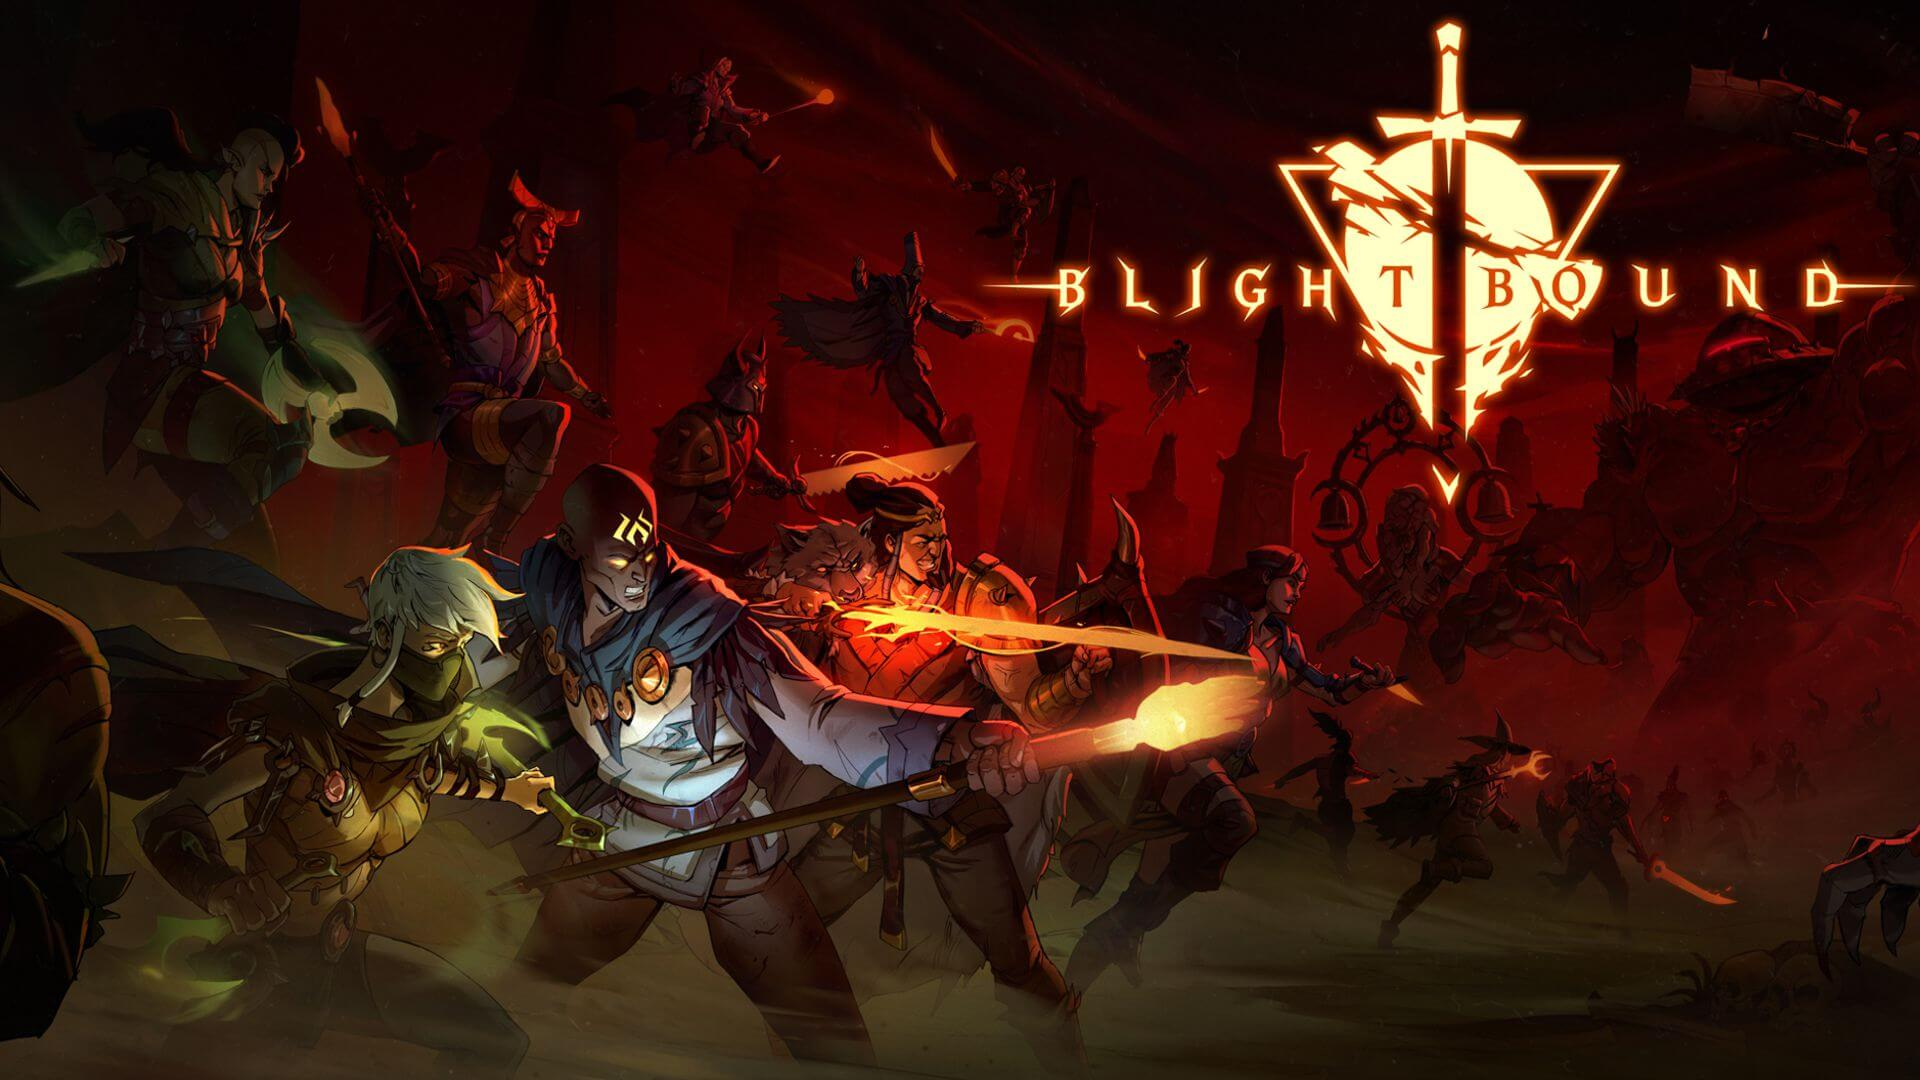 Blightbound Releases In Steam Early Access This Year